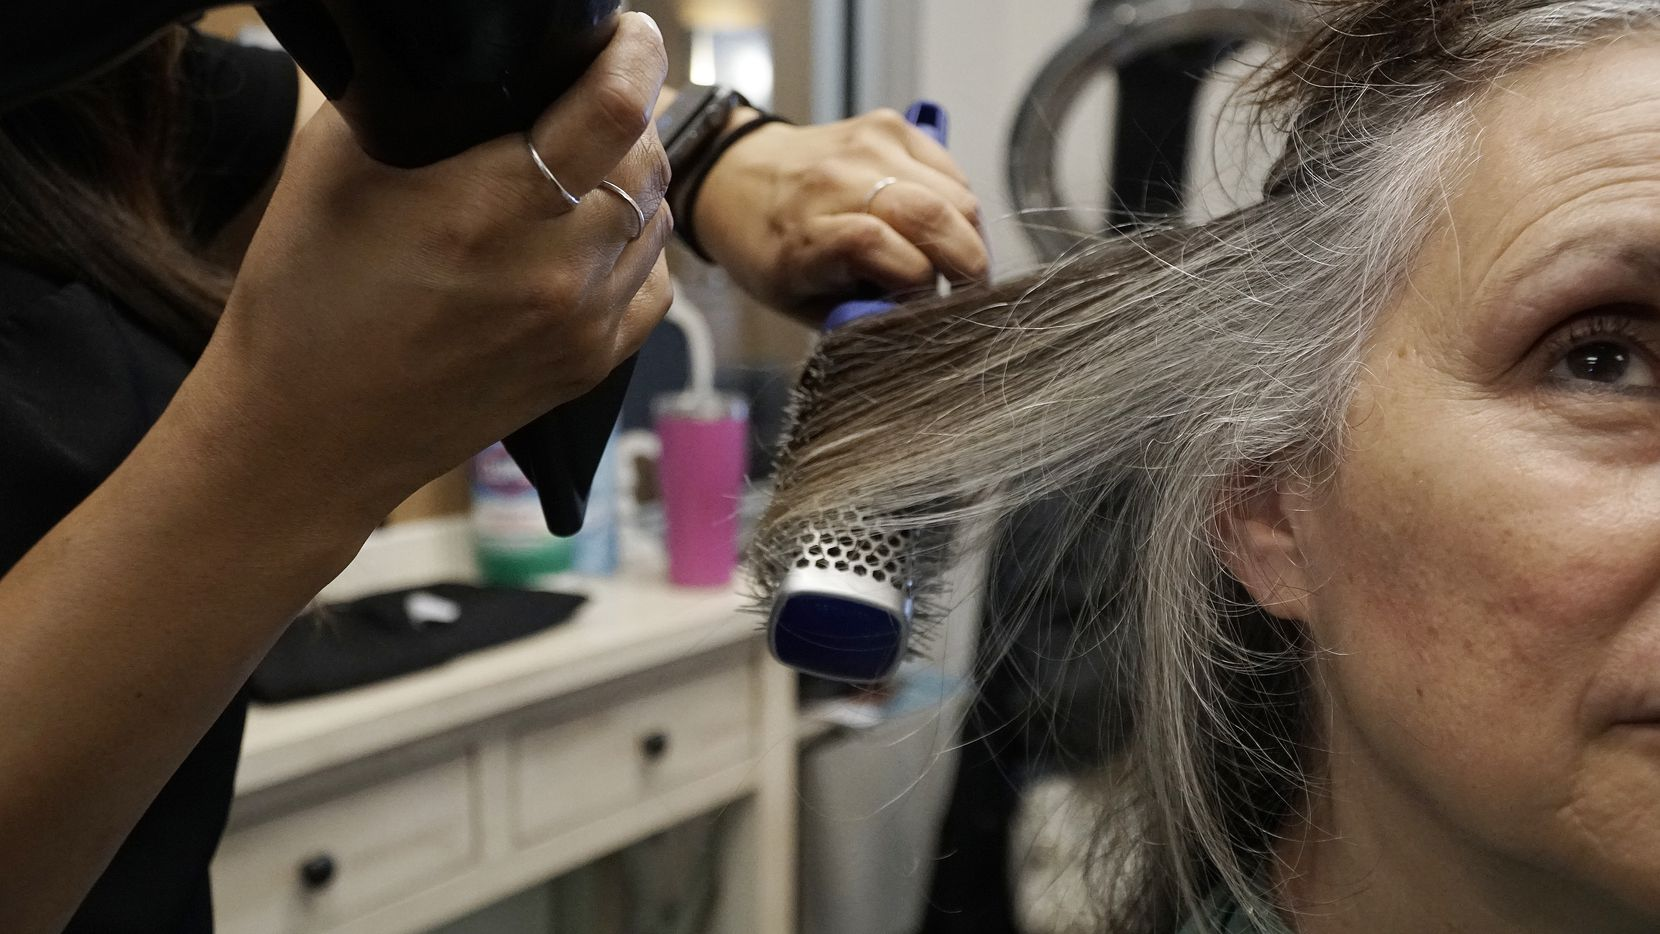 Hairstylist Veronica Vazquez of Sola Salons in Colleyville helped ease Harriet Blake's transition to gray hair. Going gray is nature's way of nudging people into maturity, Blake says.